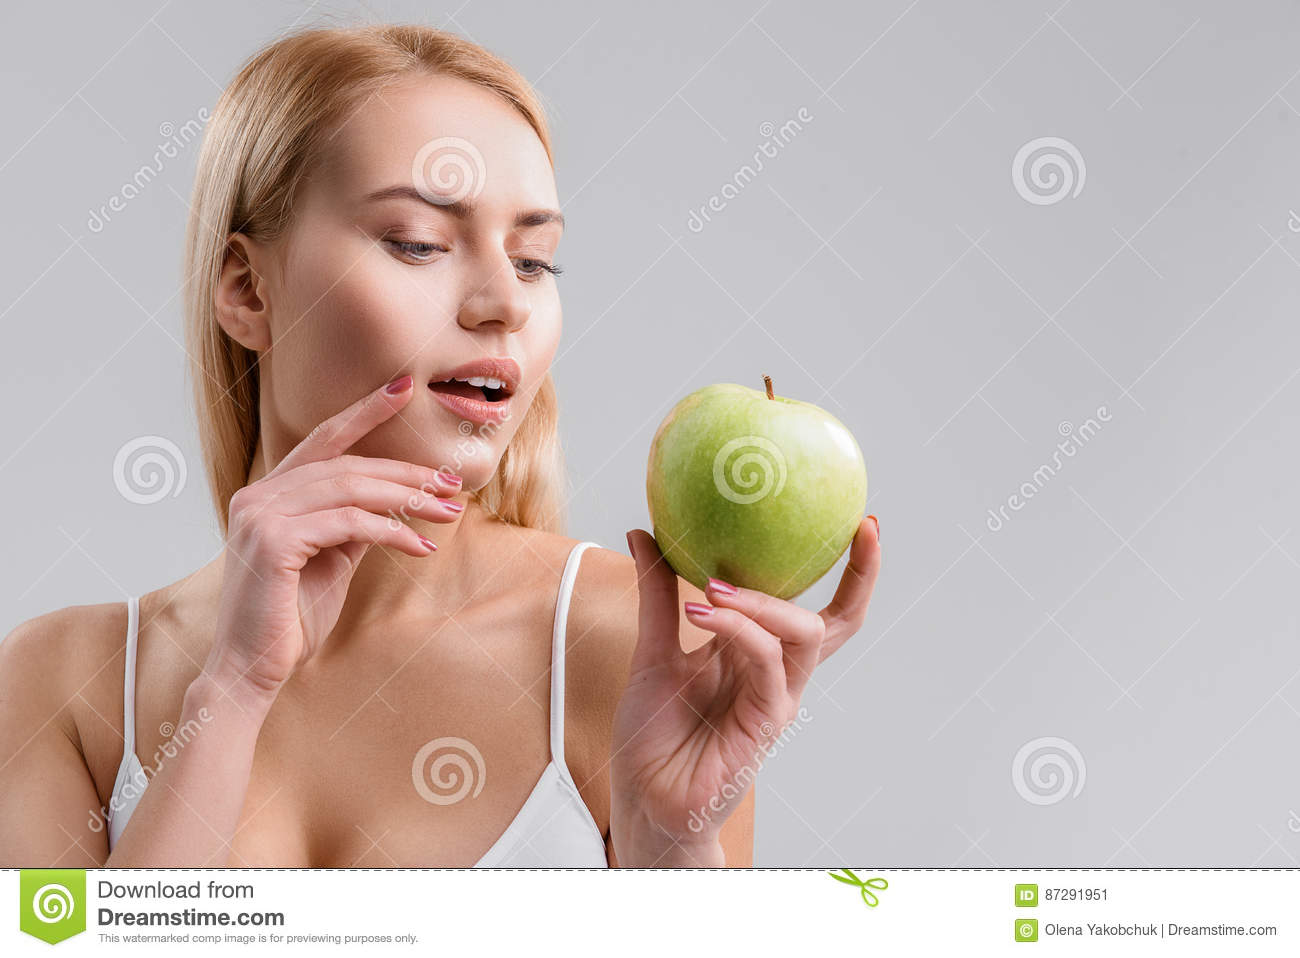 Sensual woman eating healthy food